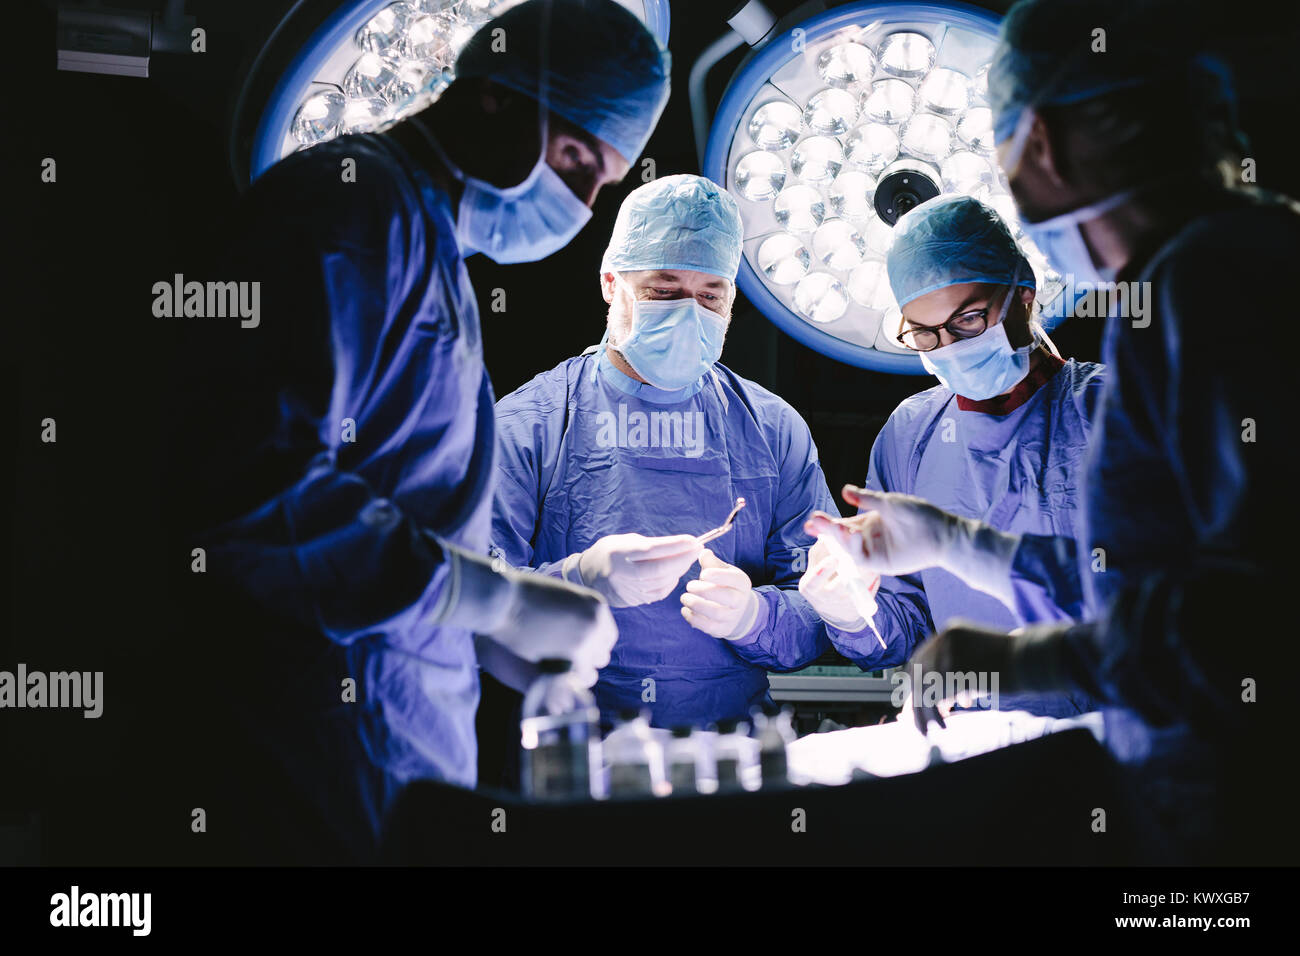 Group of medical professional performing surgery in operation theater. Team of doctors in hospital operating room. - Stock Image